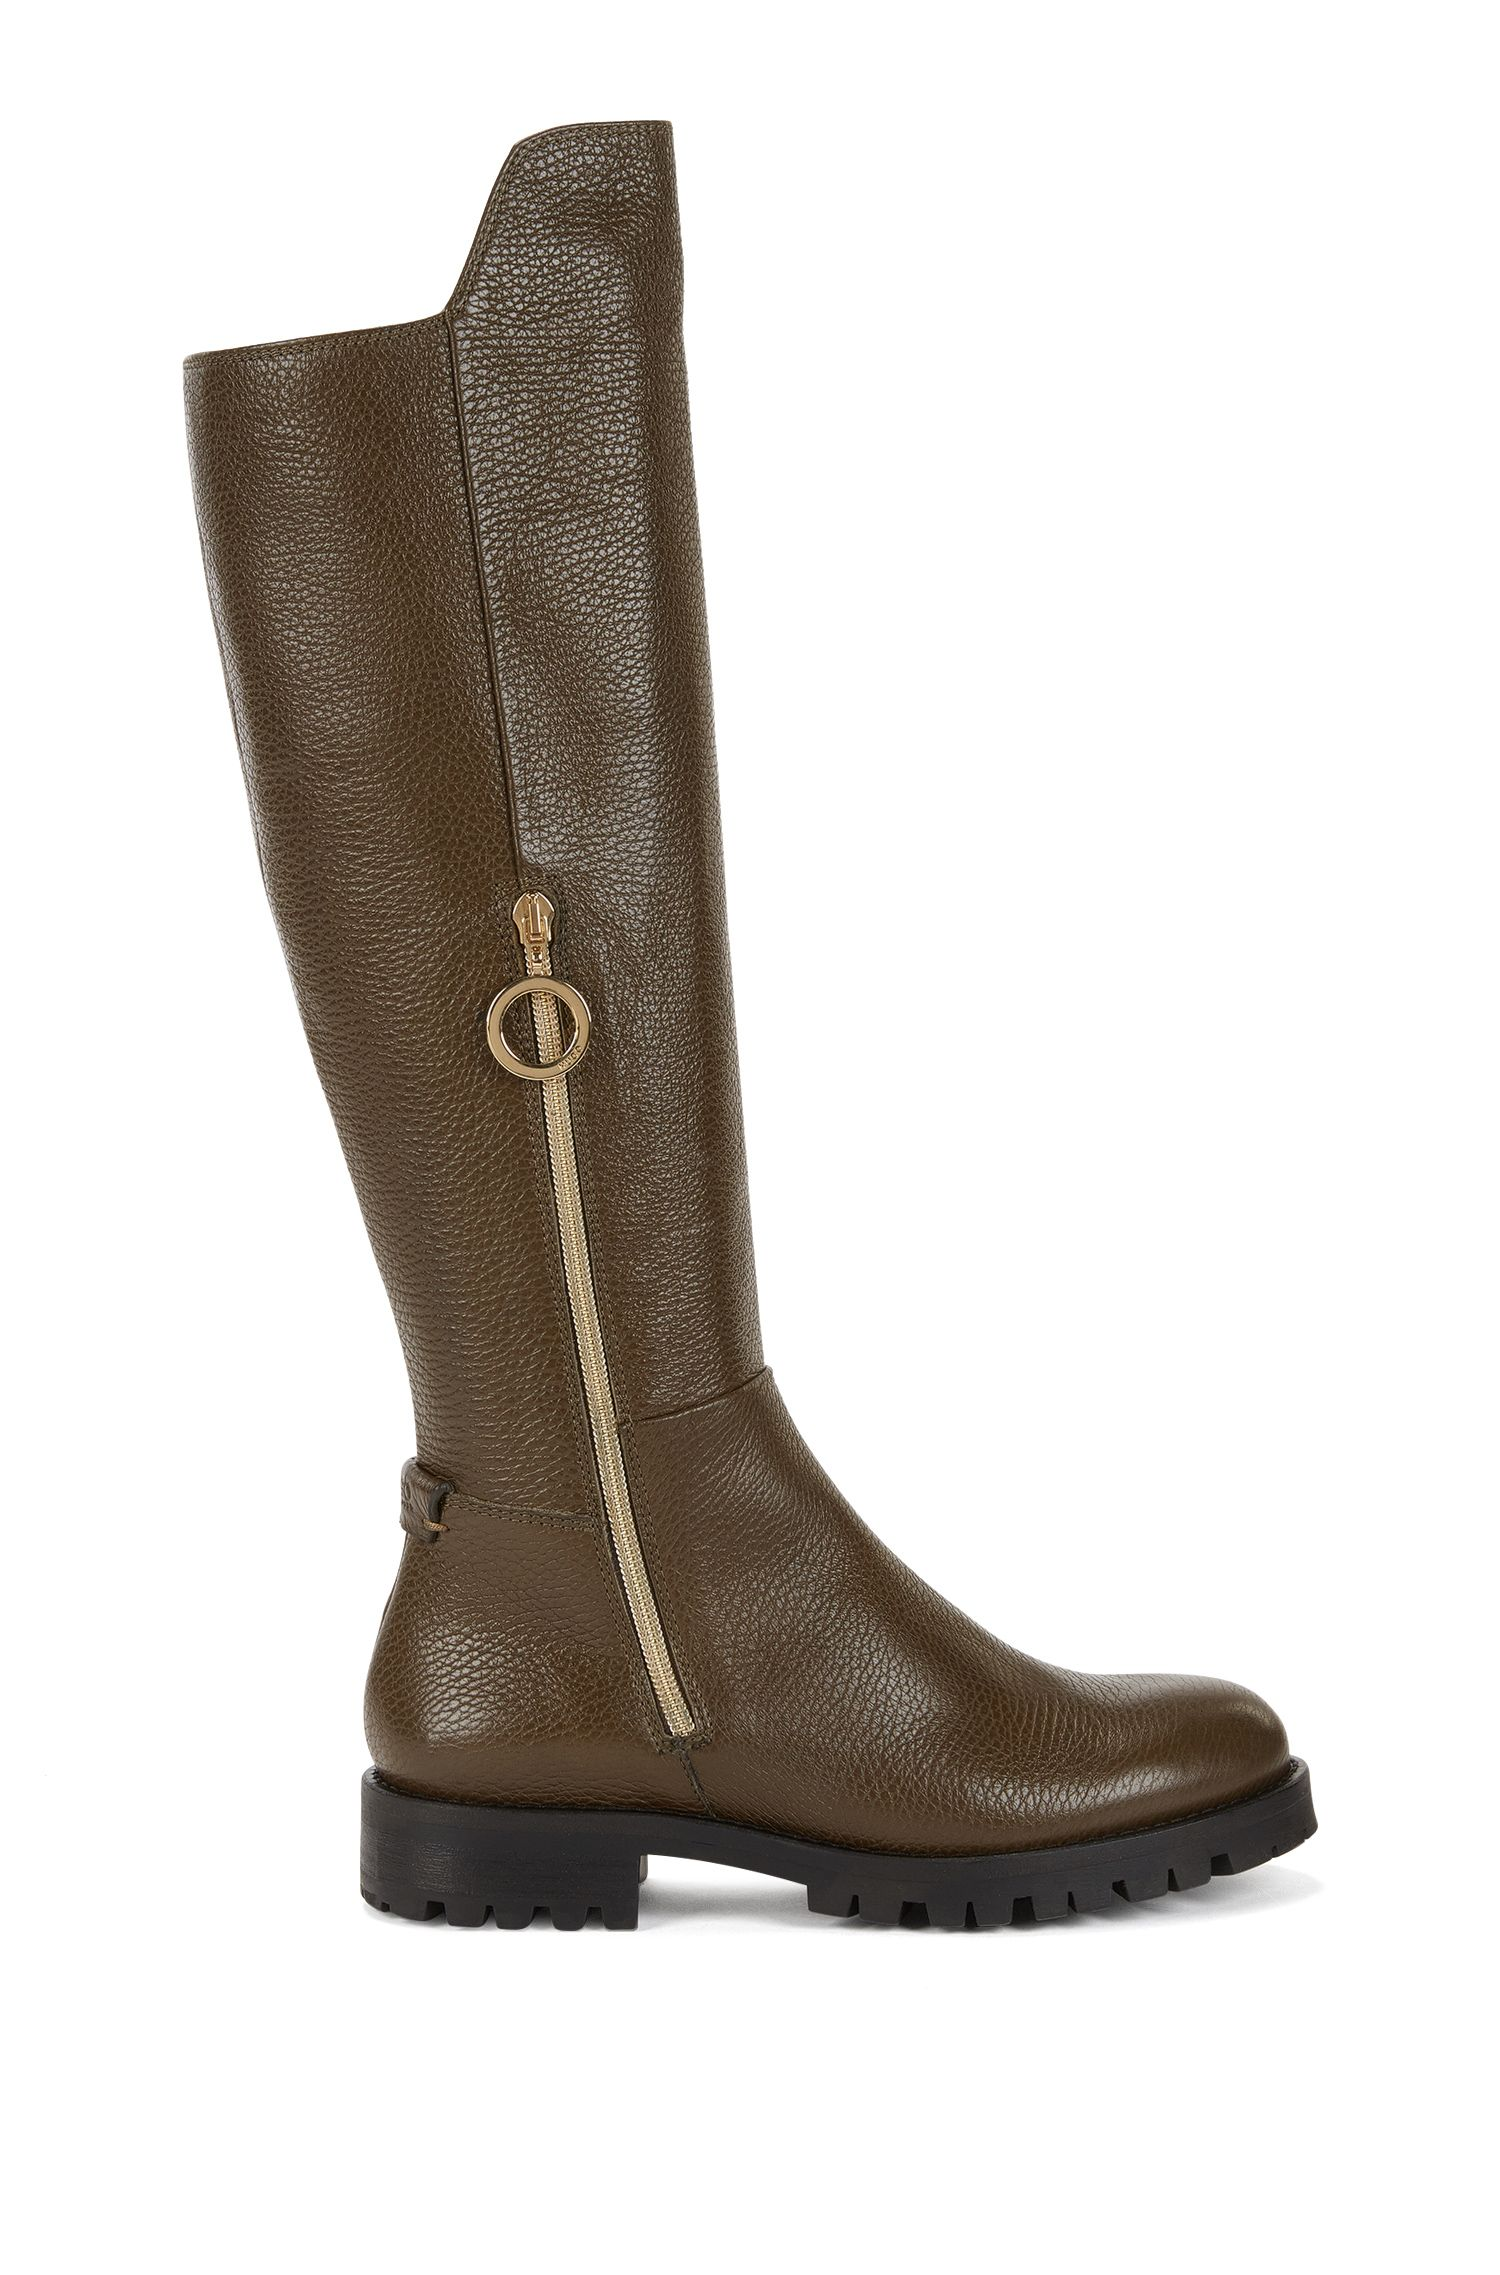 Riding boots in Italian leather